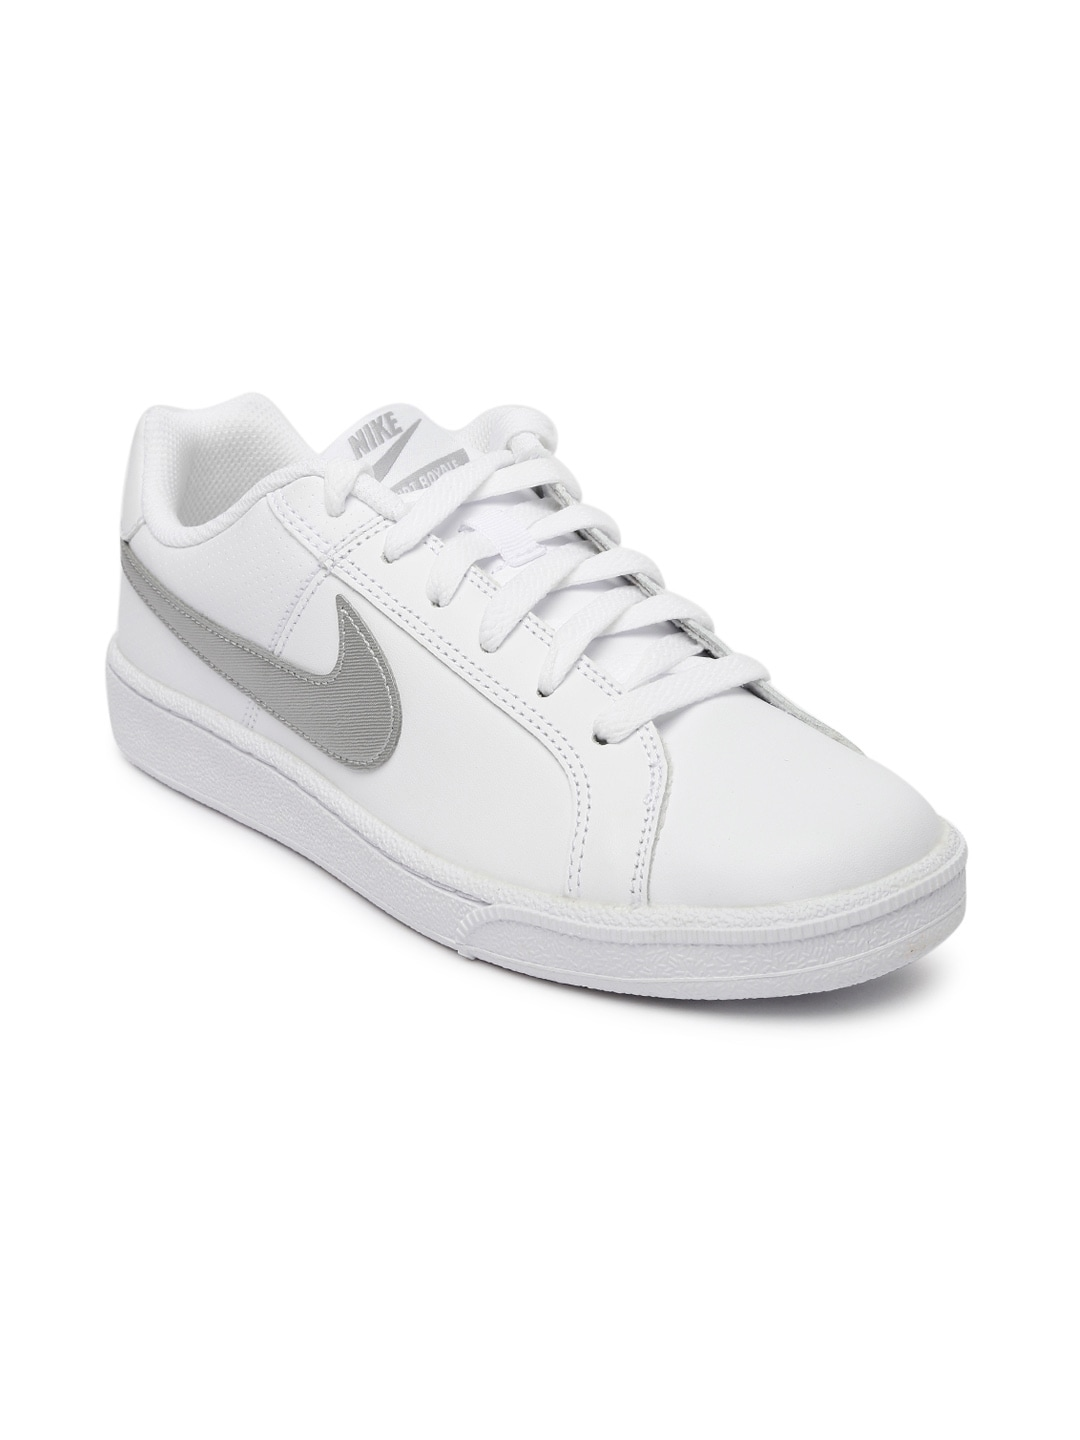 detailed look cca3c 34ce9 Nike Casual Shoes   Buy Nike Casual Shoes for Men   Women Online in India